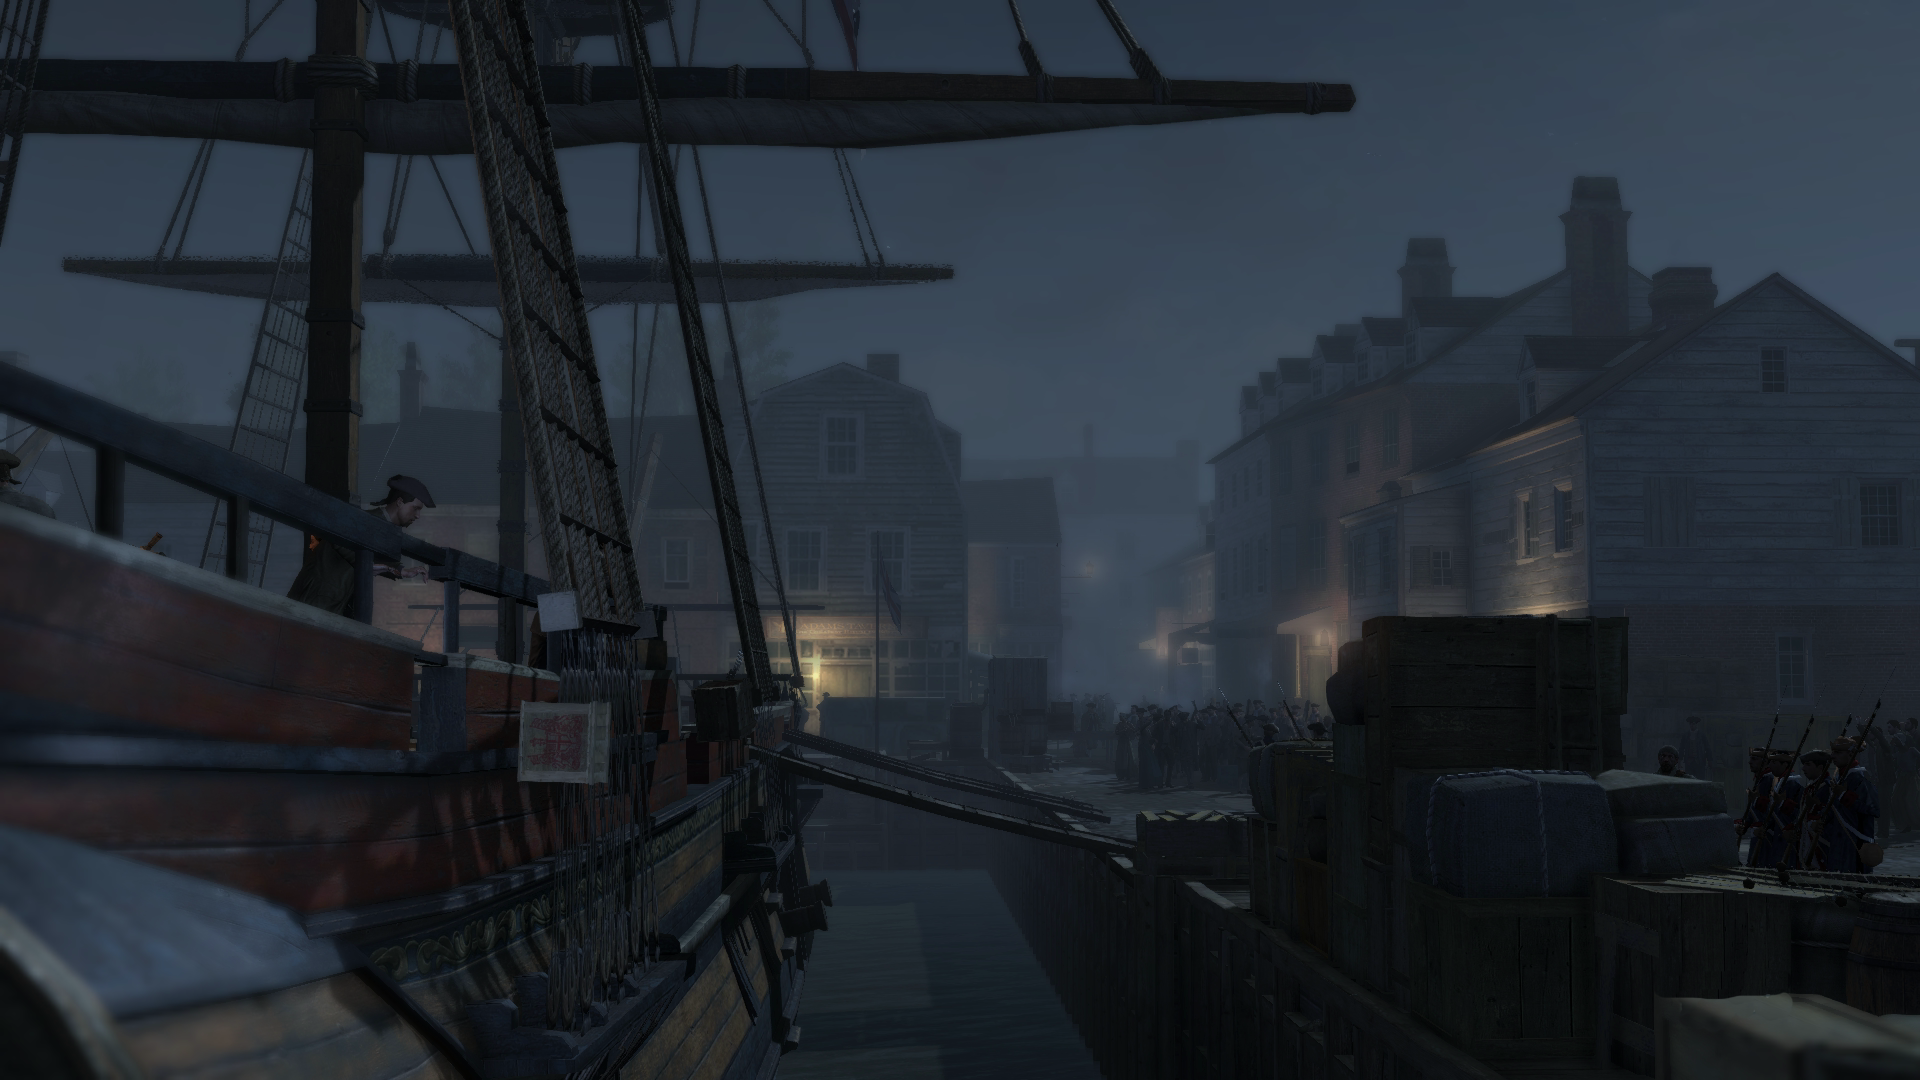 boston tea party the assassin 39 s creed wiki assassin 39 s creed assassin 39 s creed ii assassin 39 s. Black Bedroom Furniture Sets. Home Design Ideas